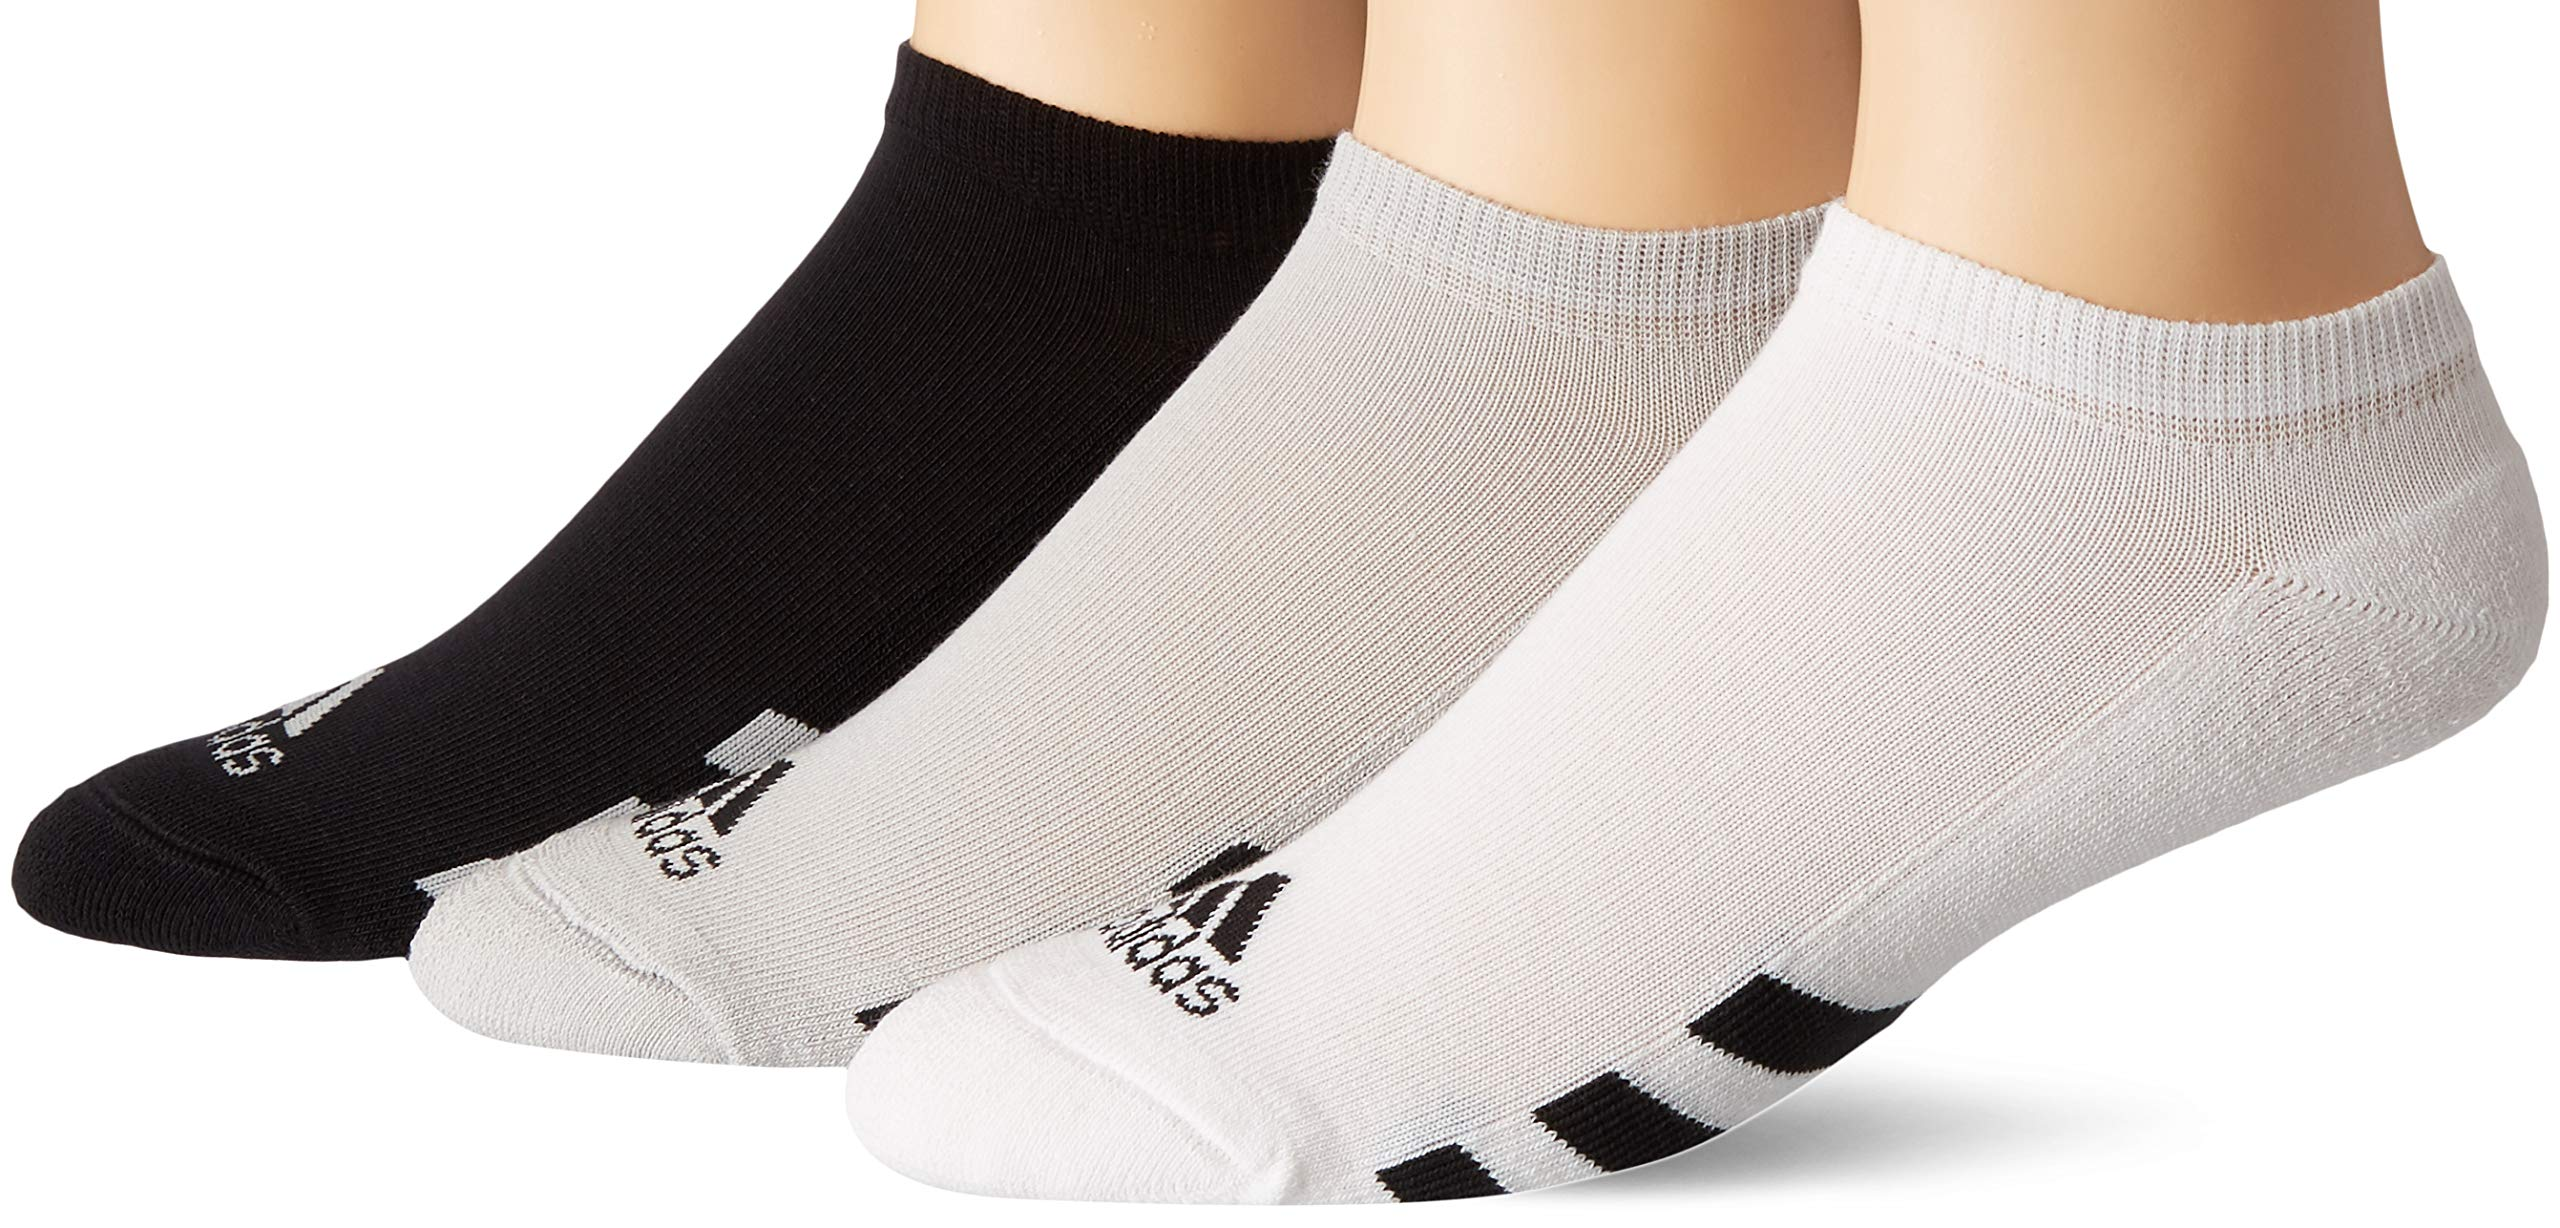 adidas Golf Men's 3-Pack No Show Sock, Black/Grey Two/White, 7-10 1/2 by adidas